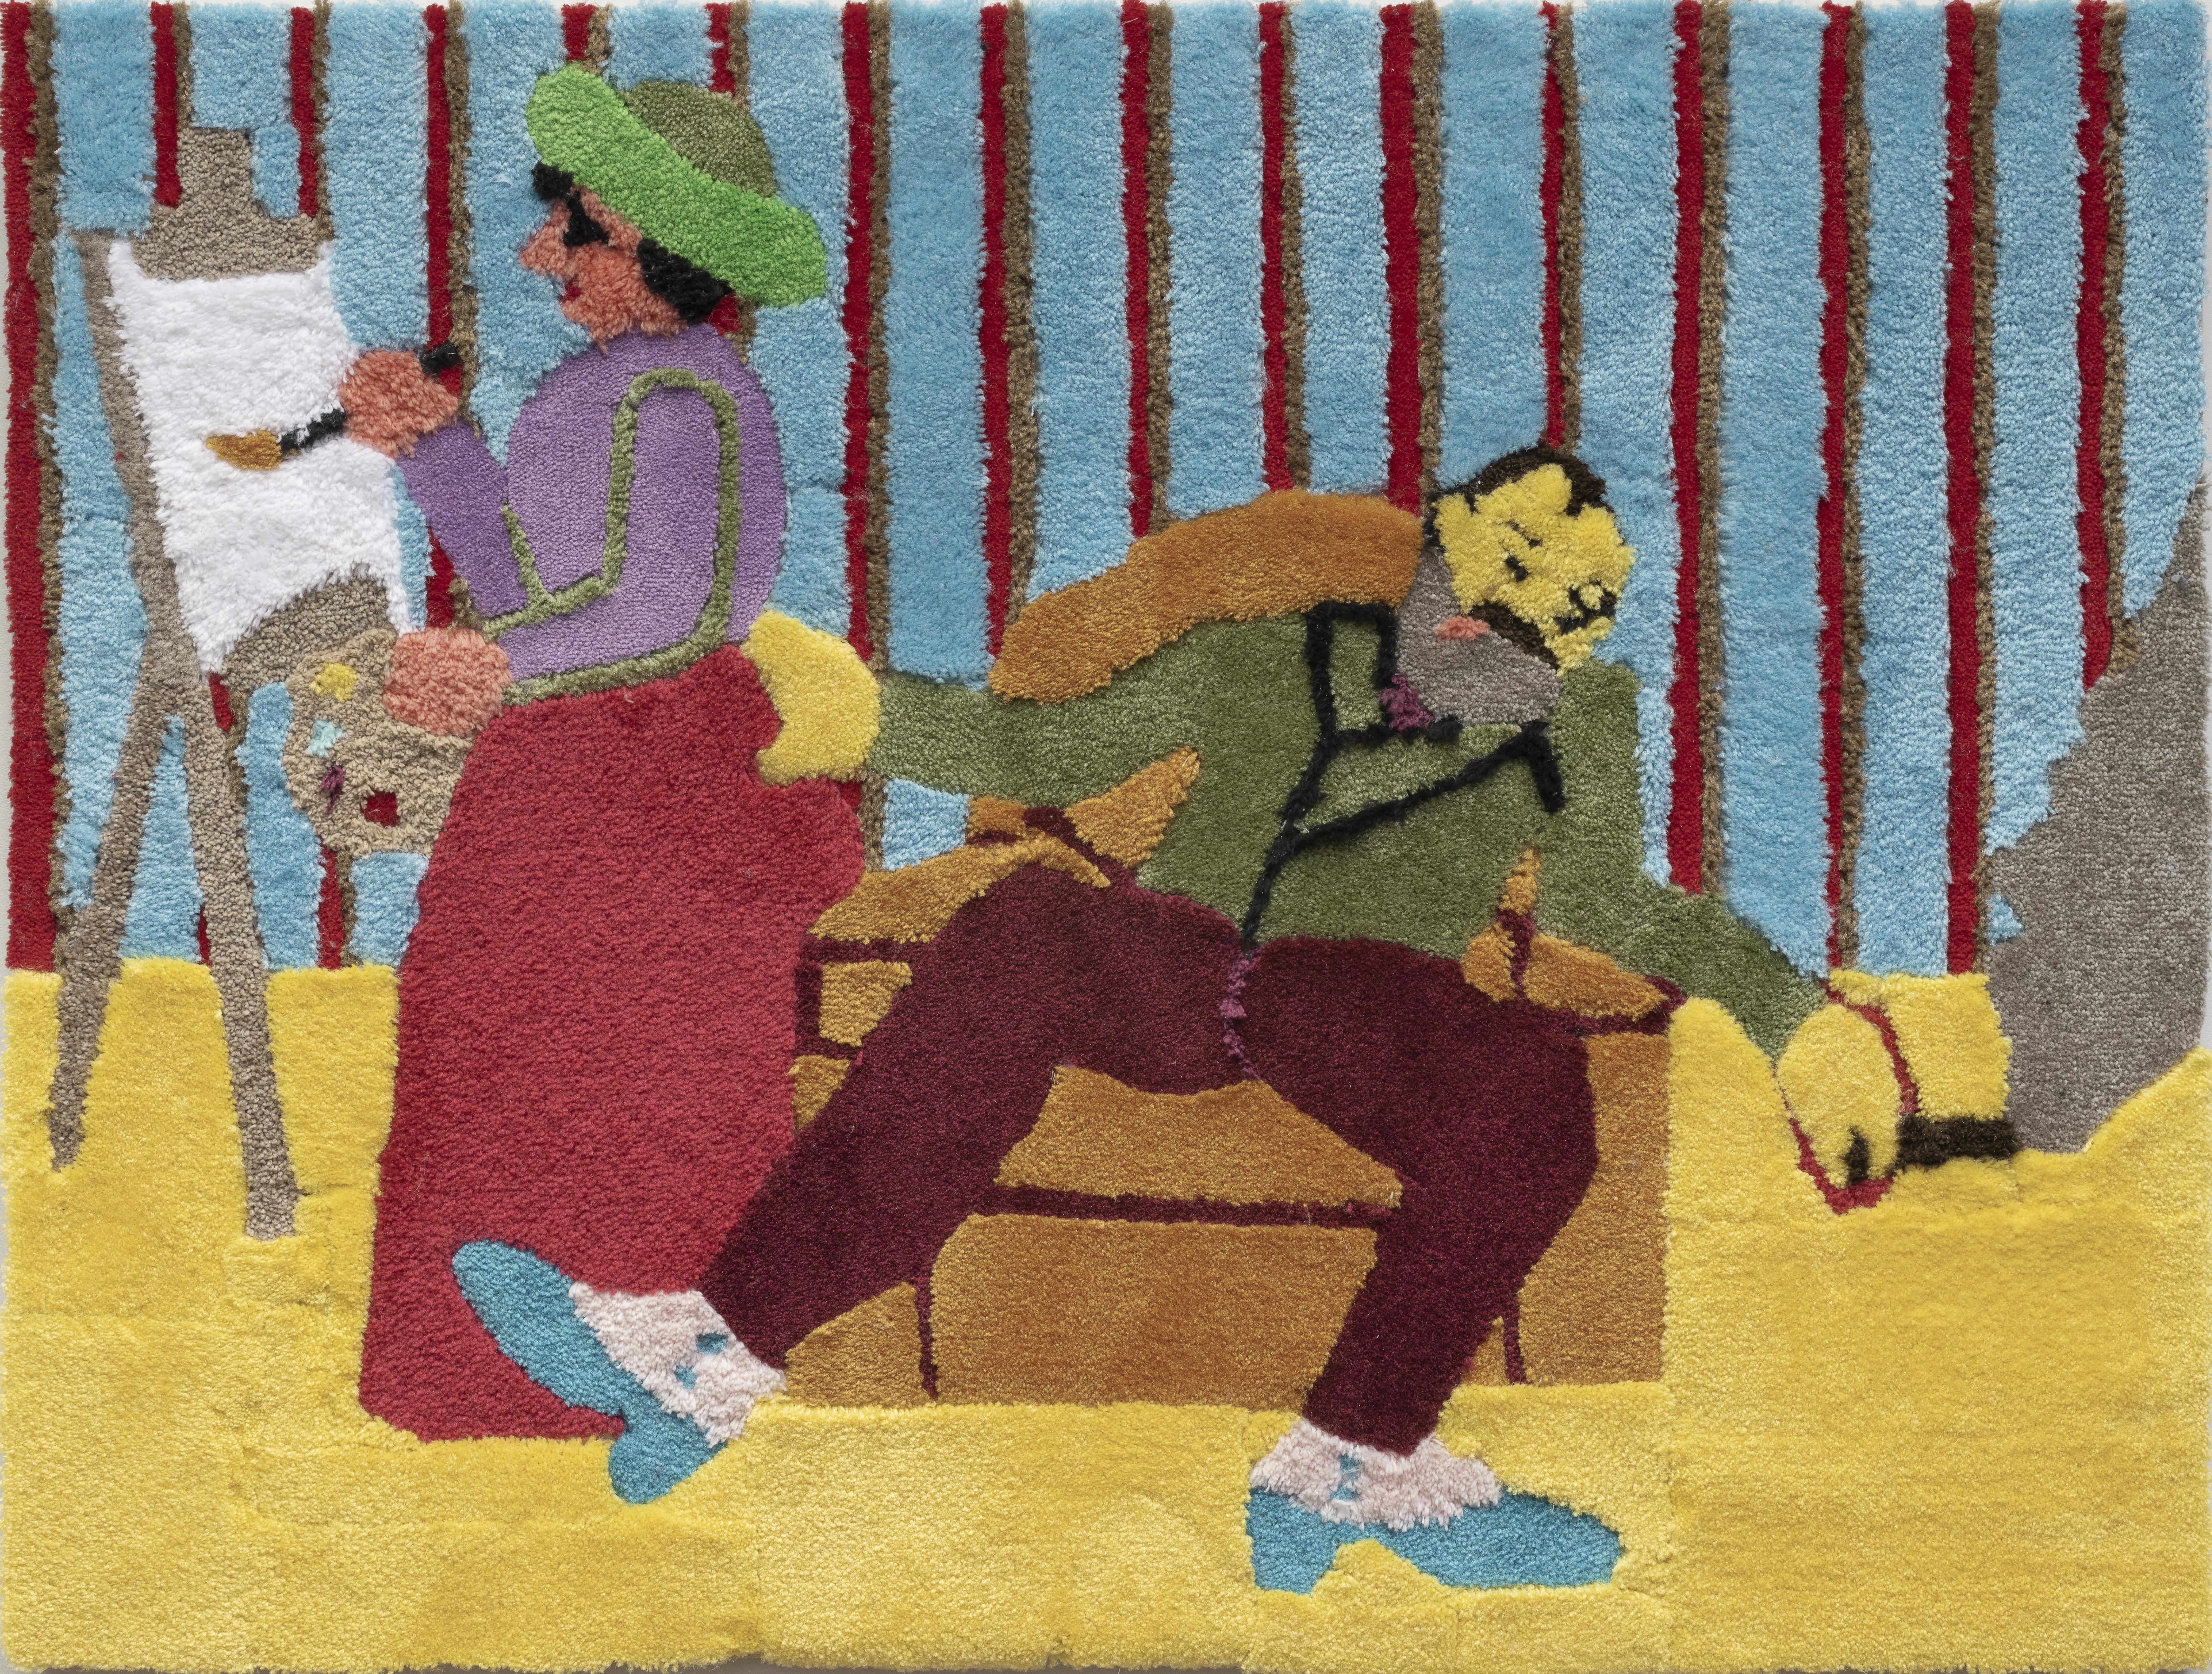 A scene rendered in carpet depicts a bearded figure smoking in an armchair while a person paints.